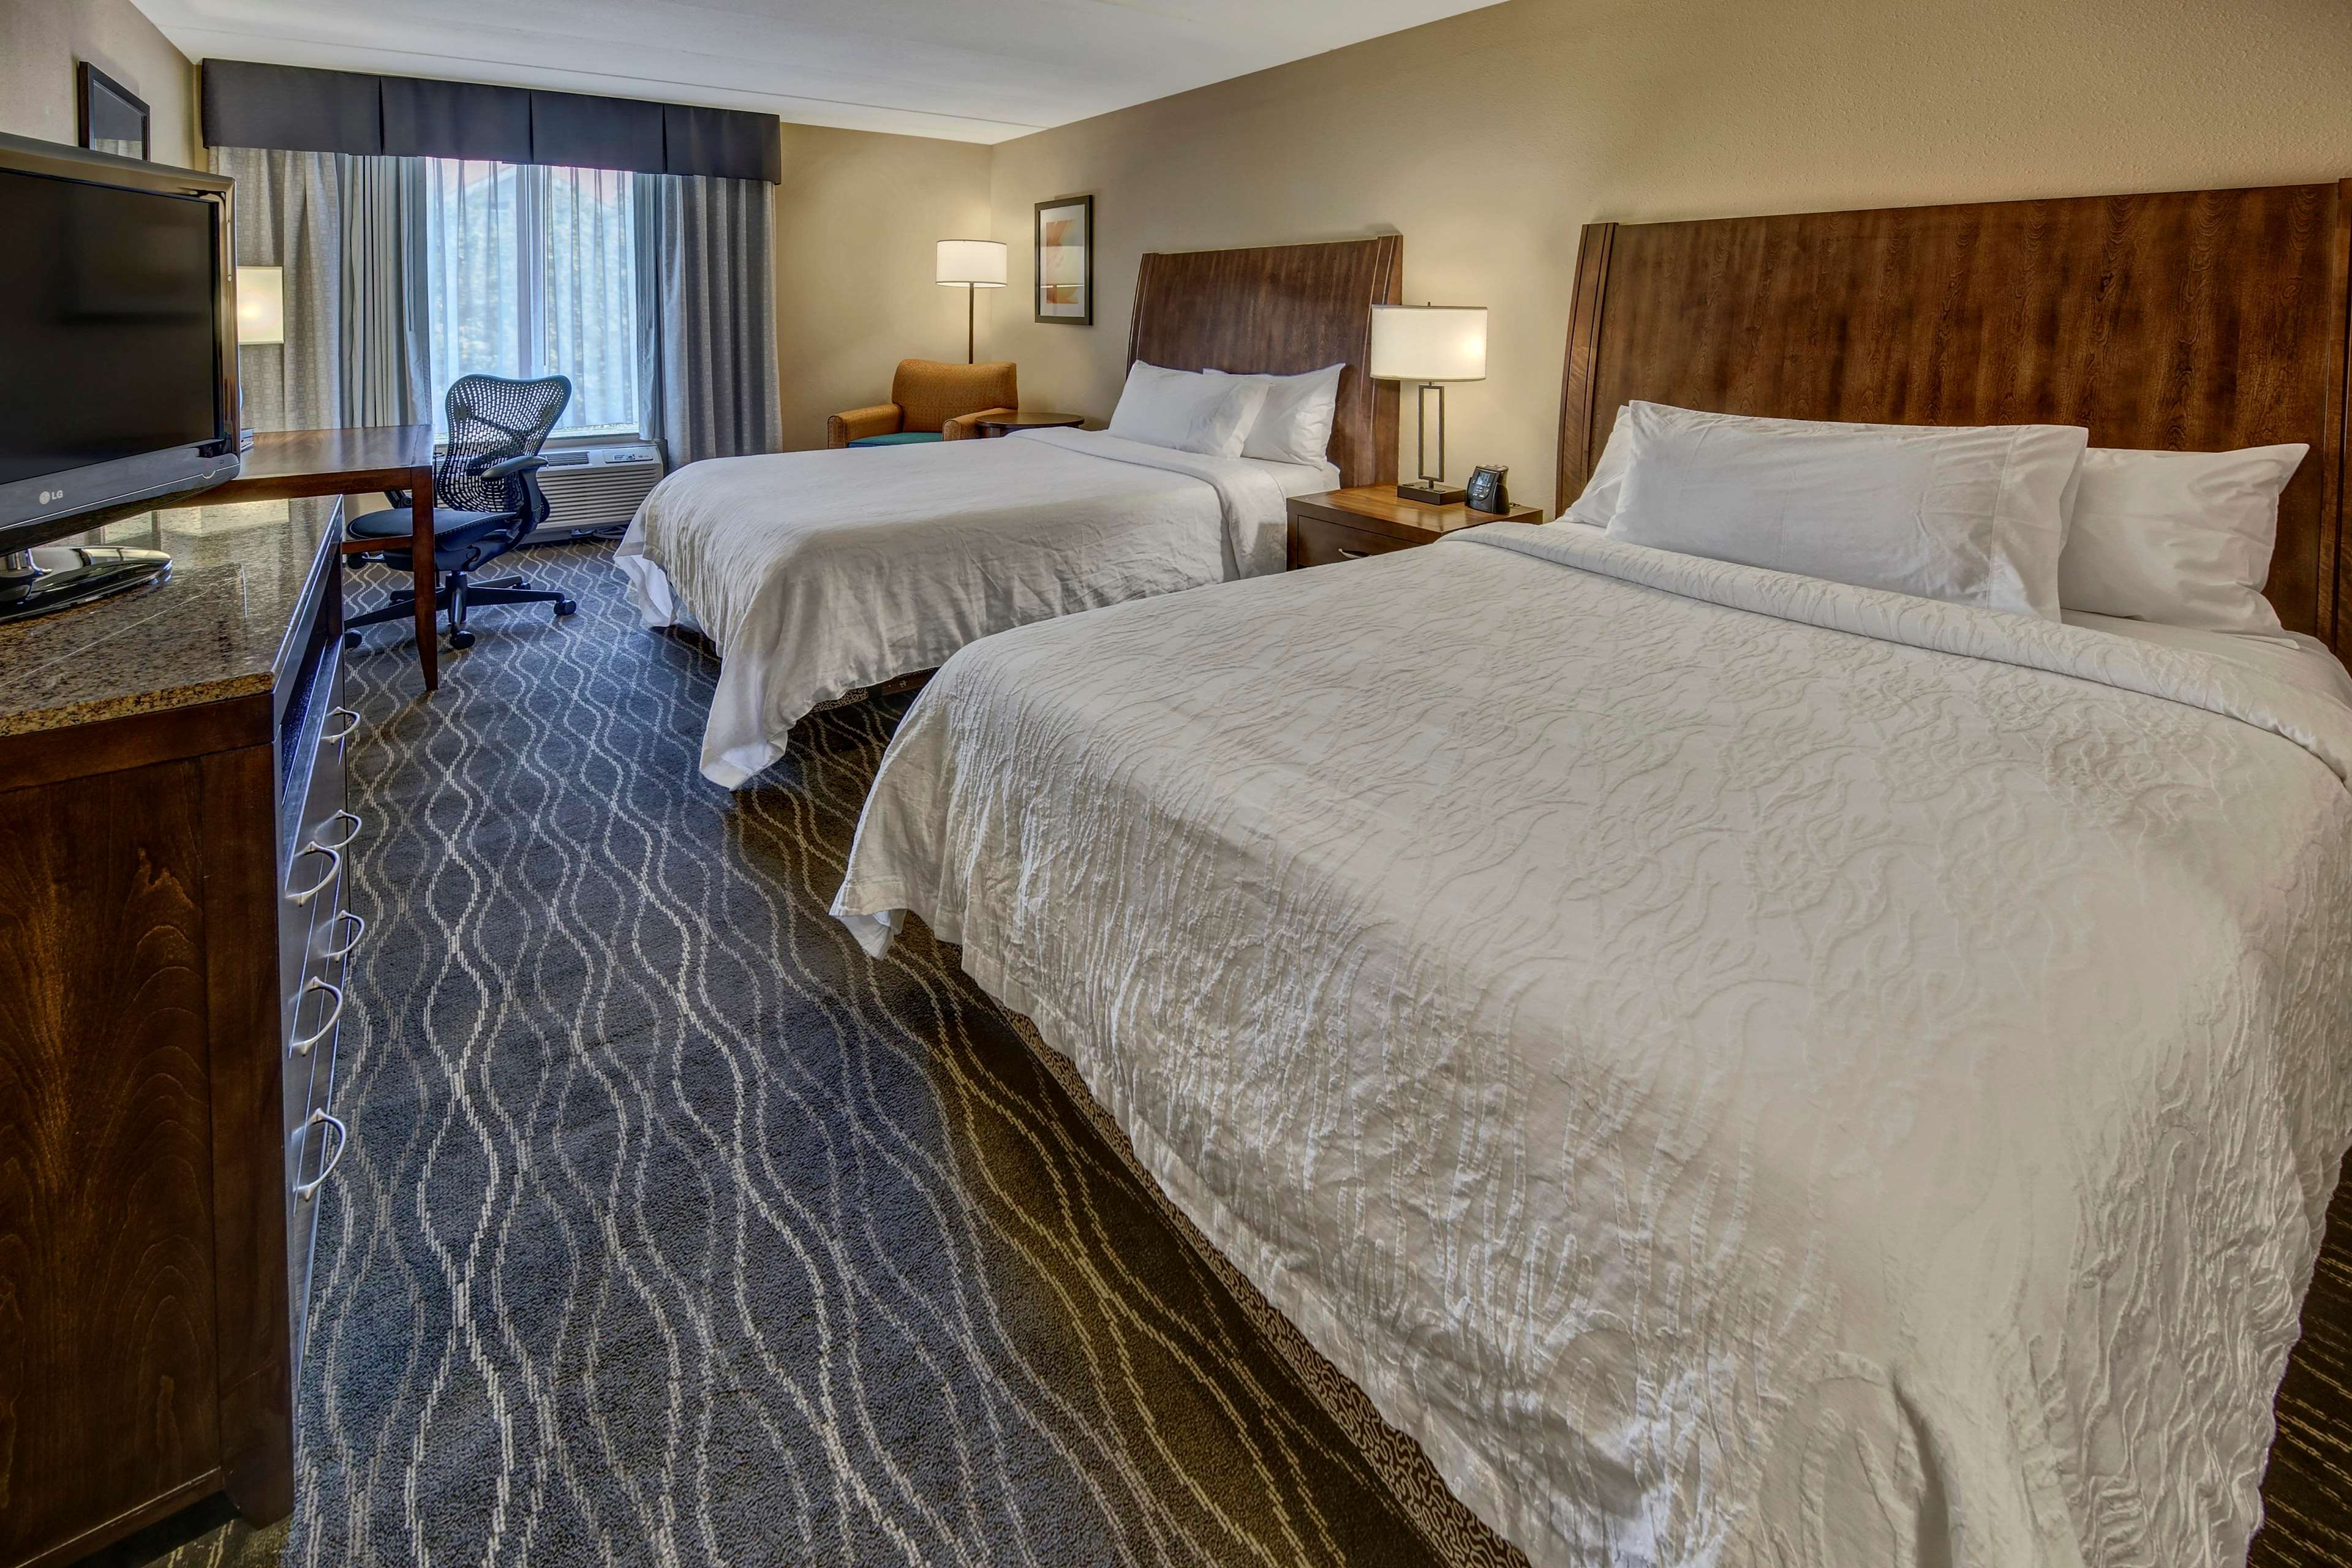 Hilton Garden Inn Houston/Bush Intercontinental Airport image 27